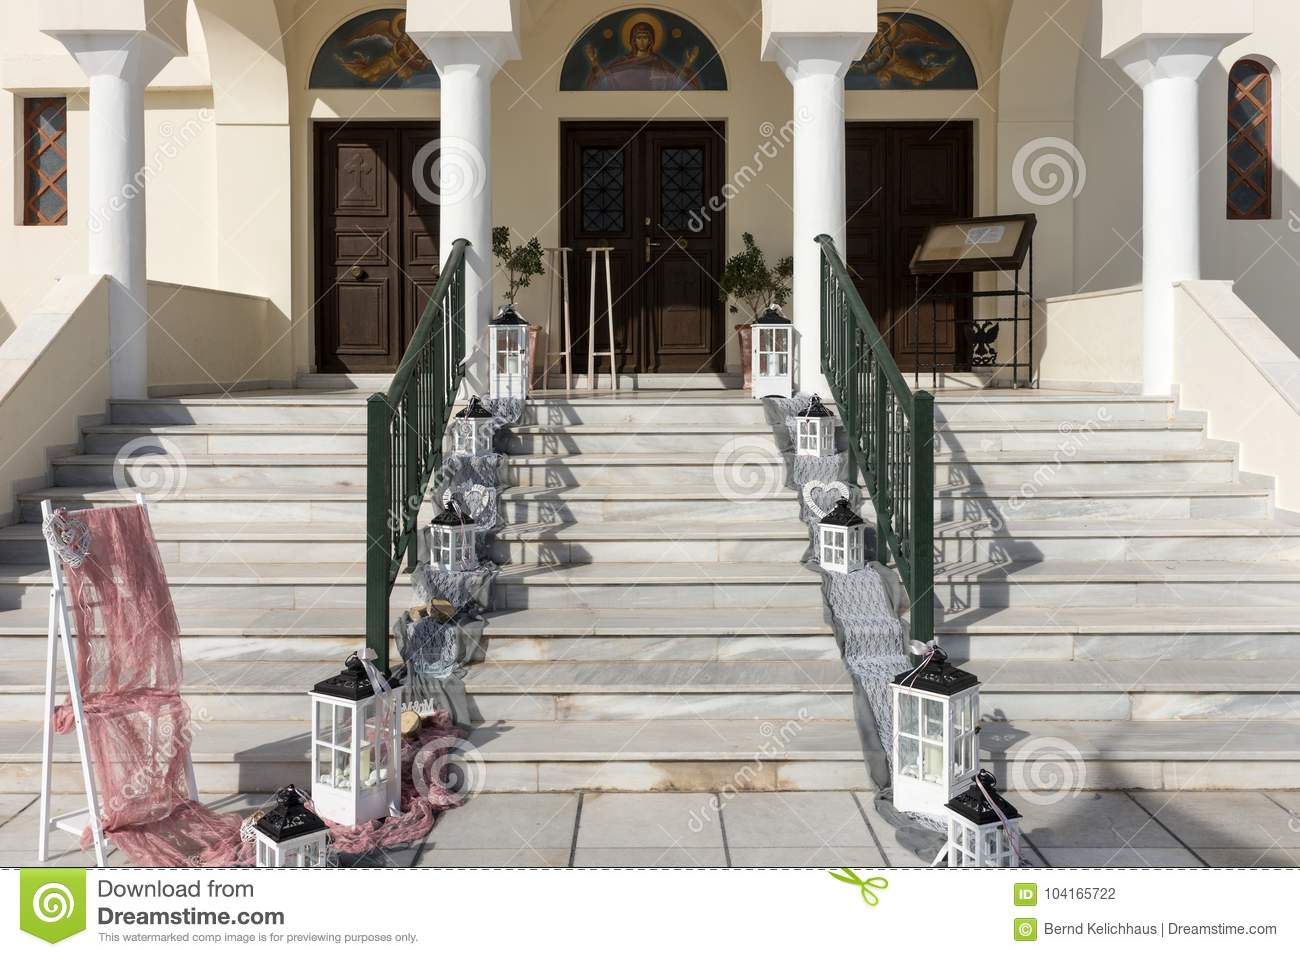 Wedding decoration on the stairs to the church stock photo image download wedding decoration on the stairs to the church stock photo image of elegance junglespirit Image collections